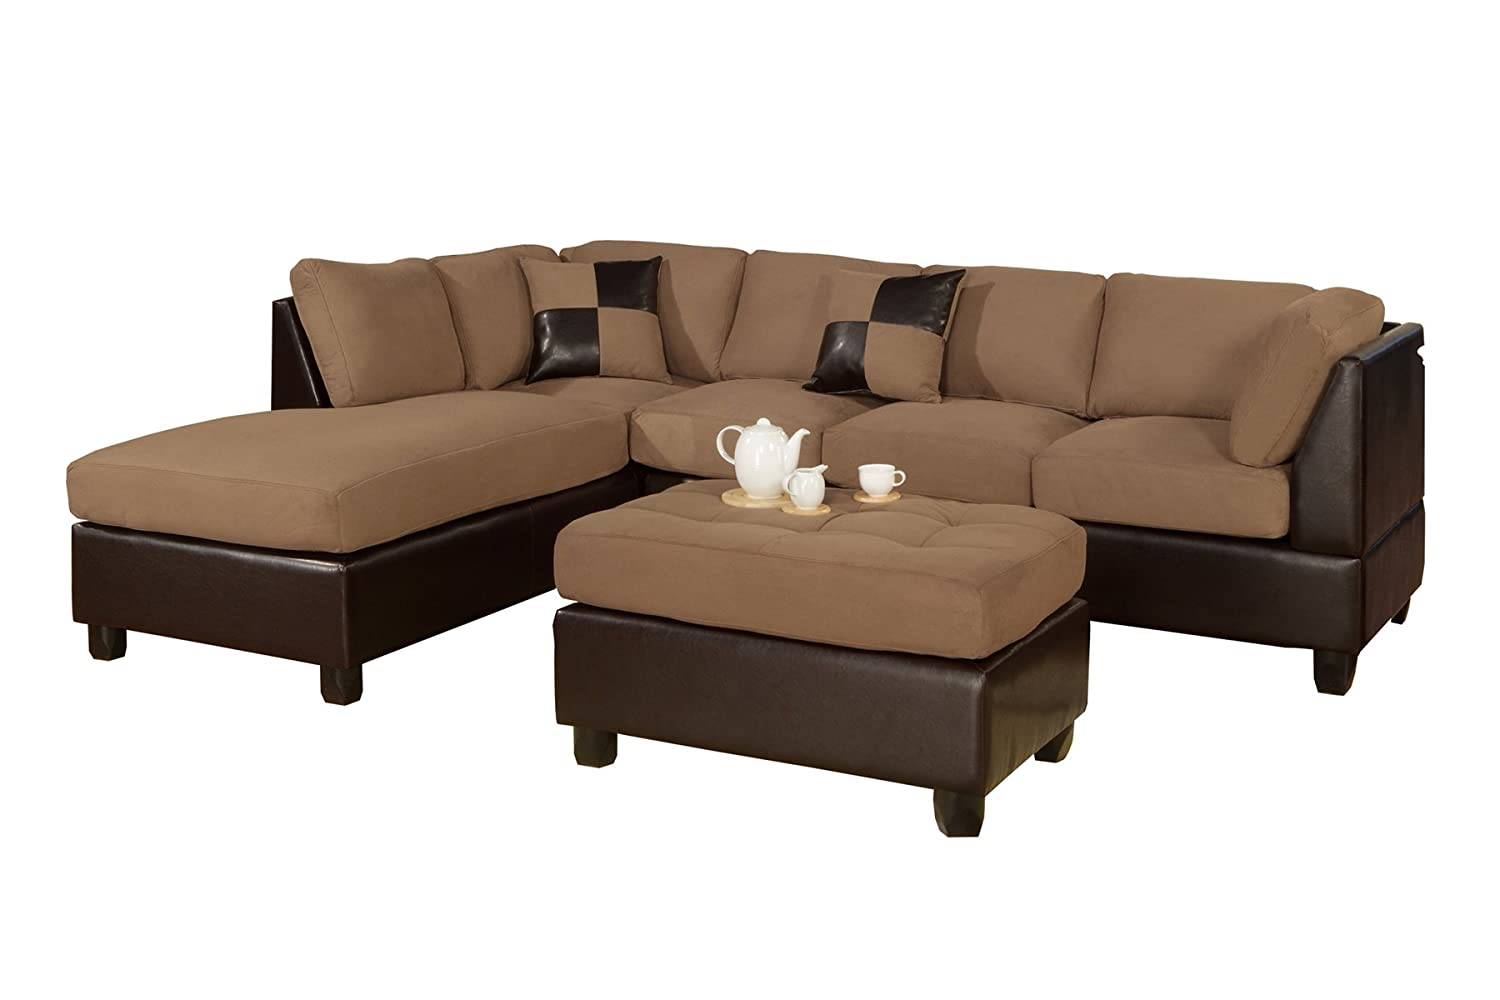 Most comfortable sectional sofa - Bobkona Hungtinton Microfiber Faux Leather 3 Piece Sectional